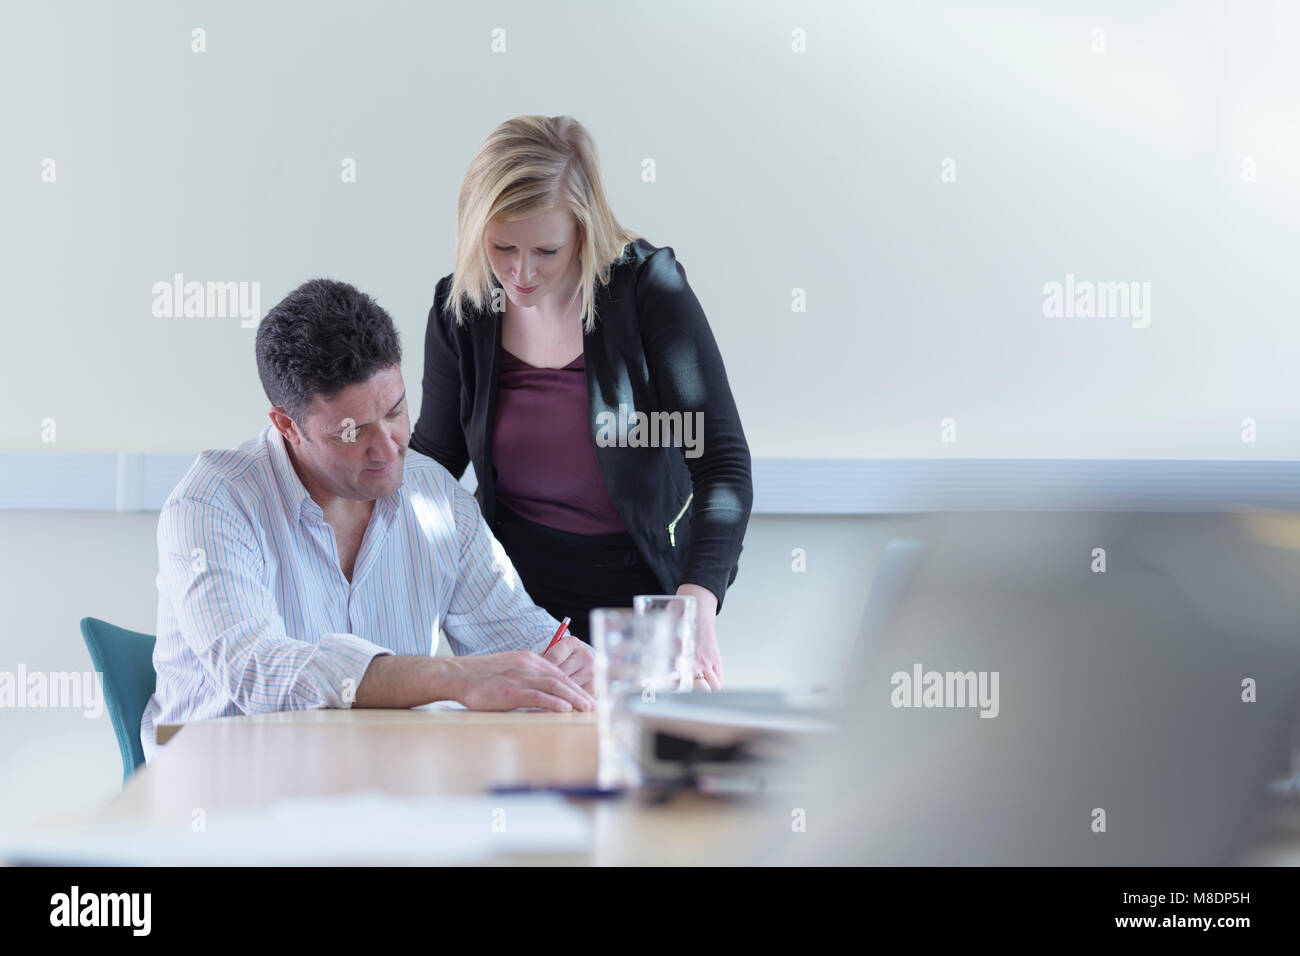 Female and male scientists signing contract about pharmaceutical project in meeting room - Stock Image